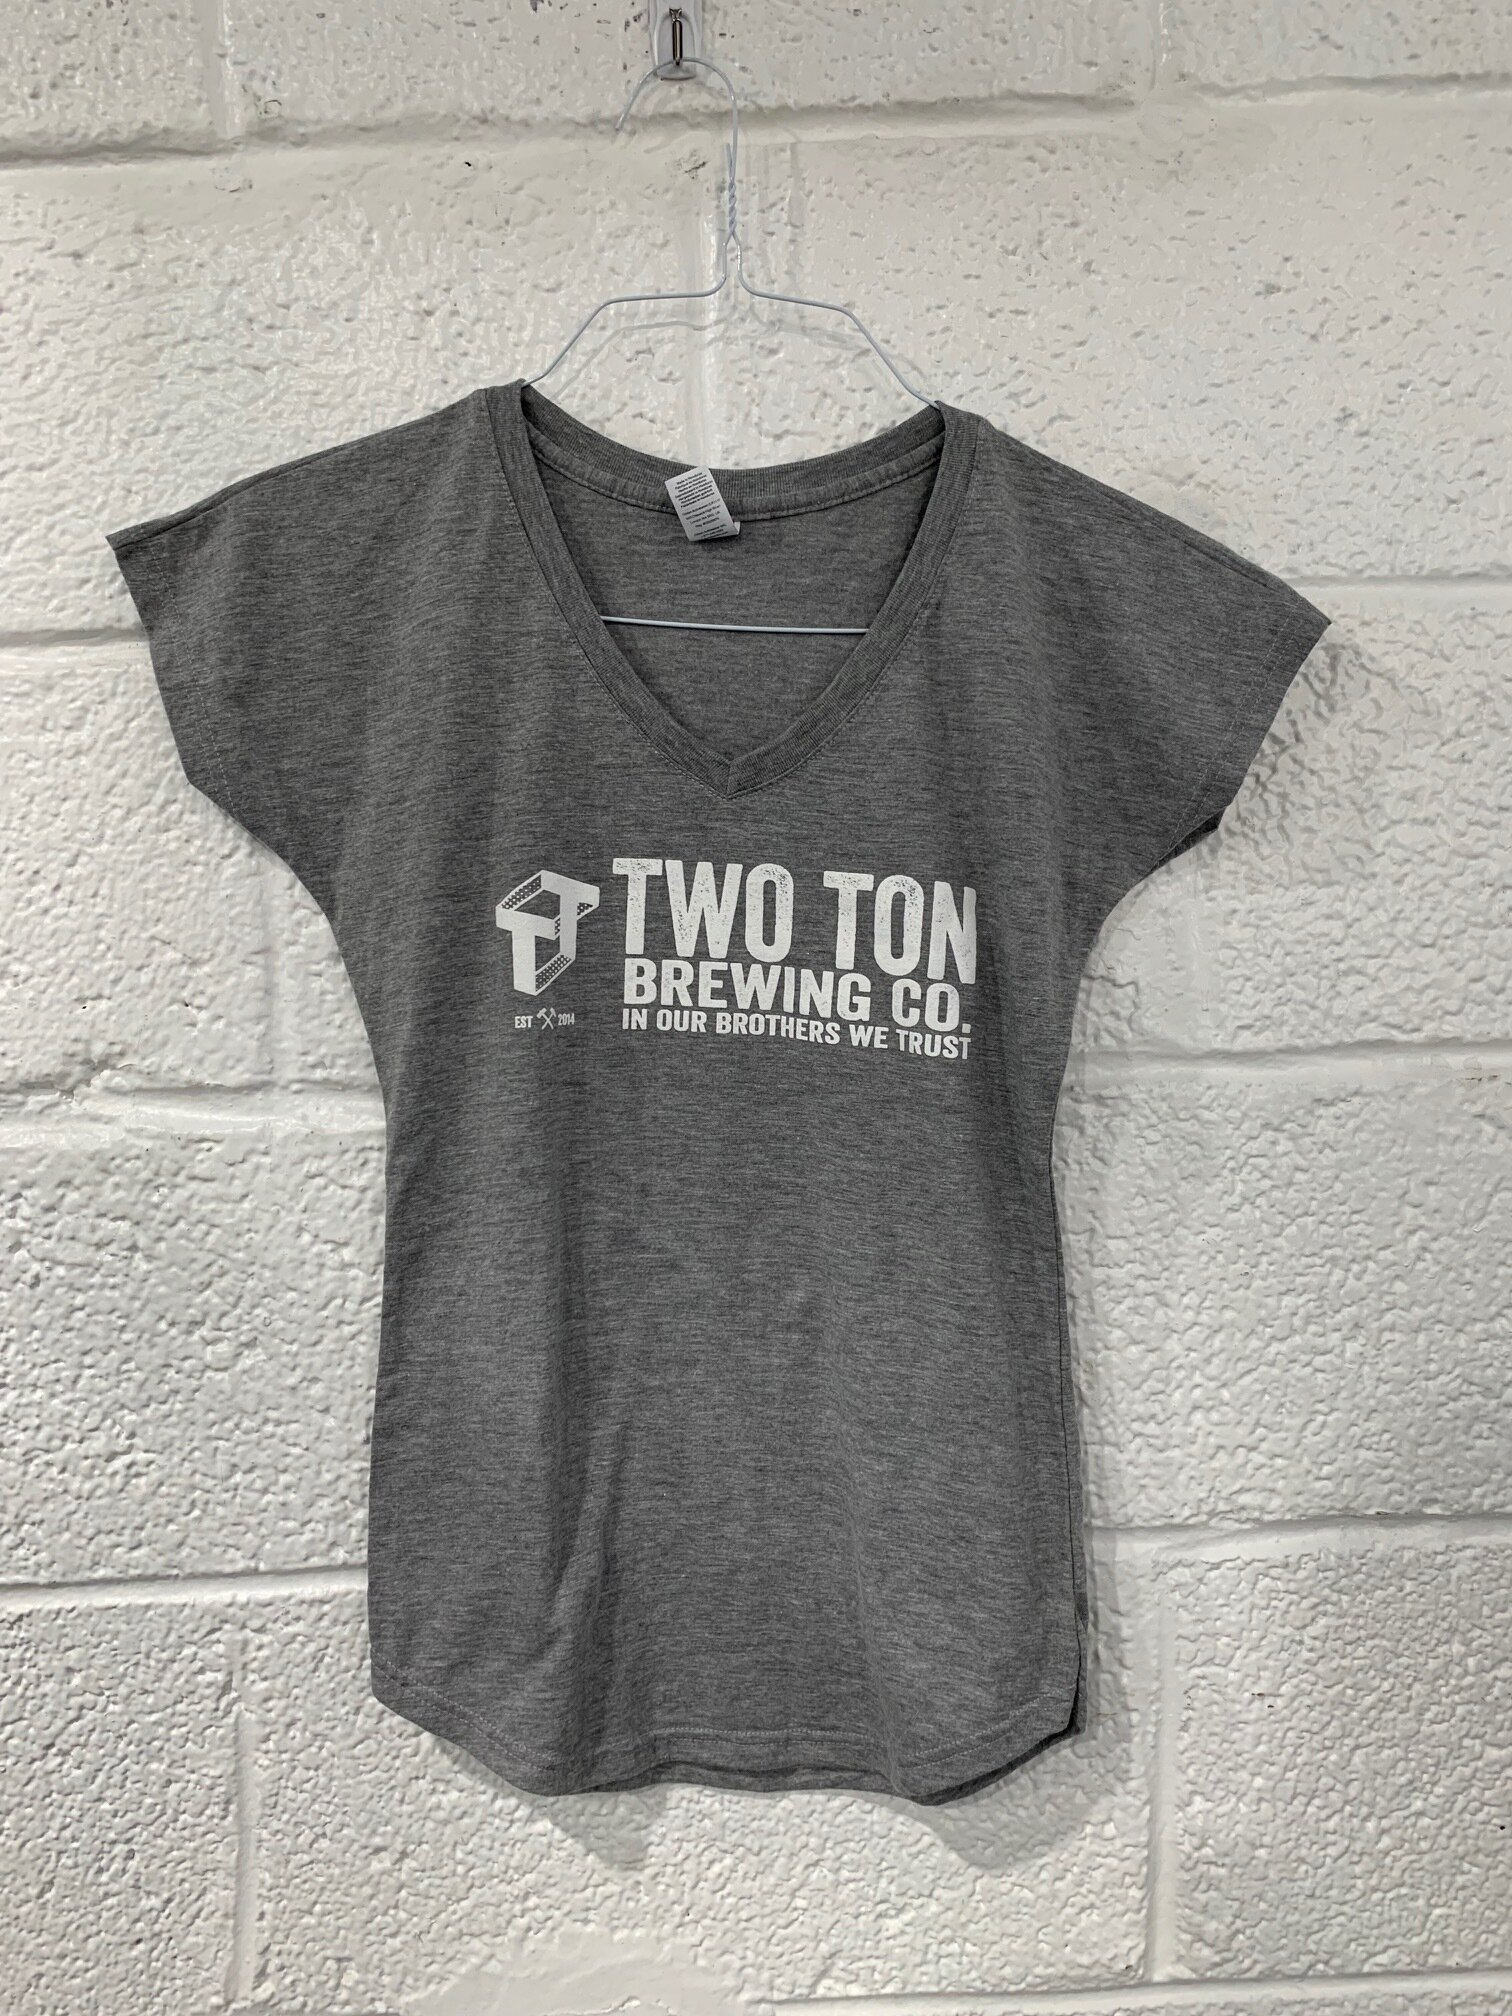 Two Ton V-Neck Logo T-shirt   $ 15.00   Unisex, white logo on heather gray T-shirt.  Multiple sizes available.